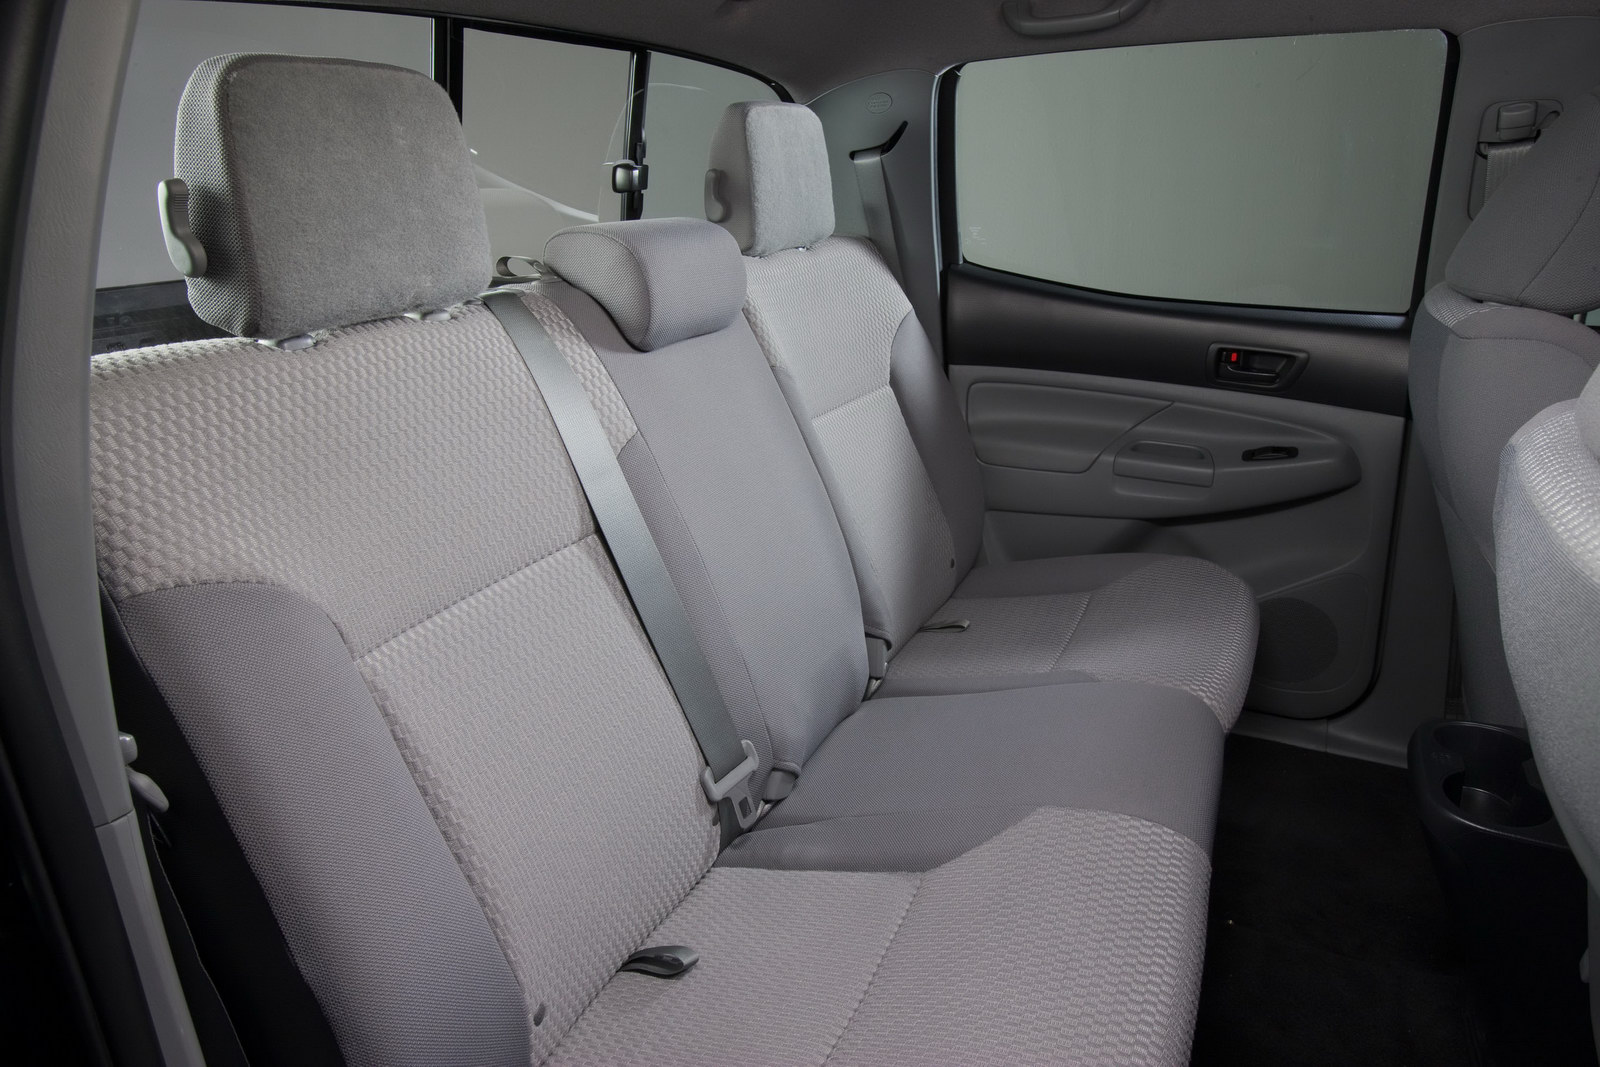 tacoma toyota interior cab double access enture gets system seats features flooring weather autoevolution insurance offers redesigned exterior fleet automotive